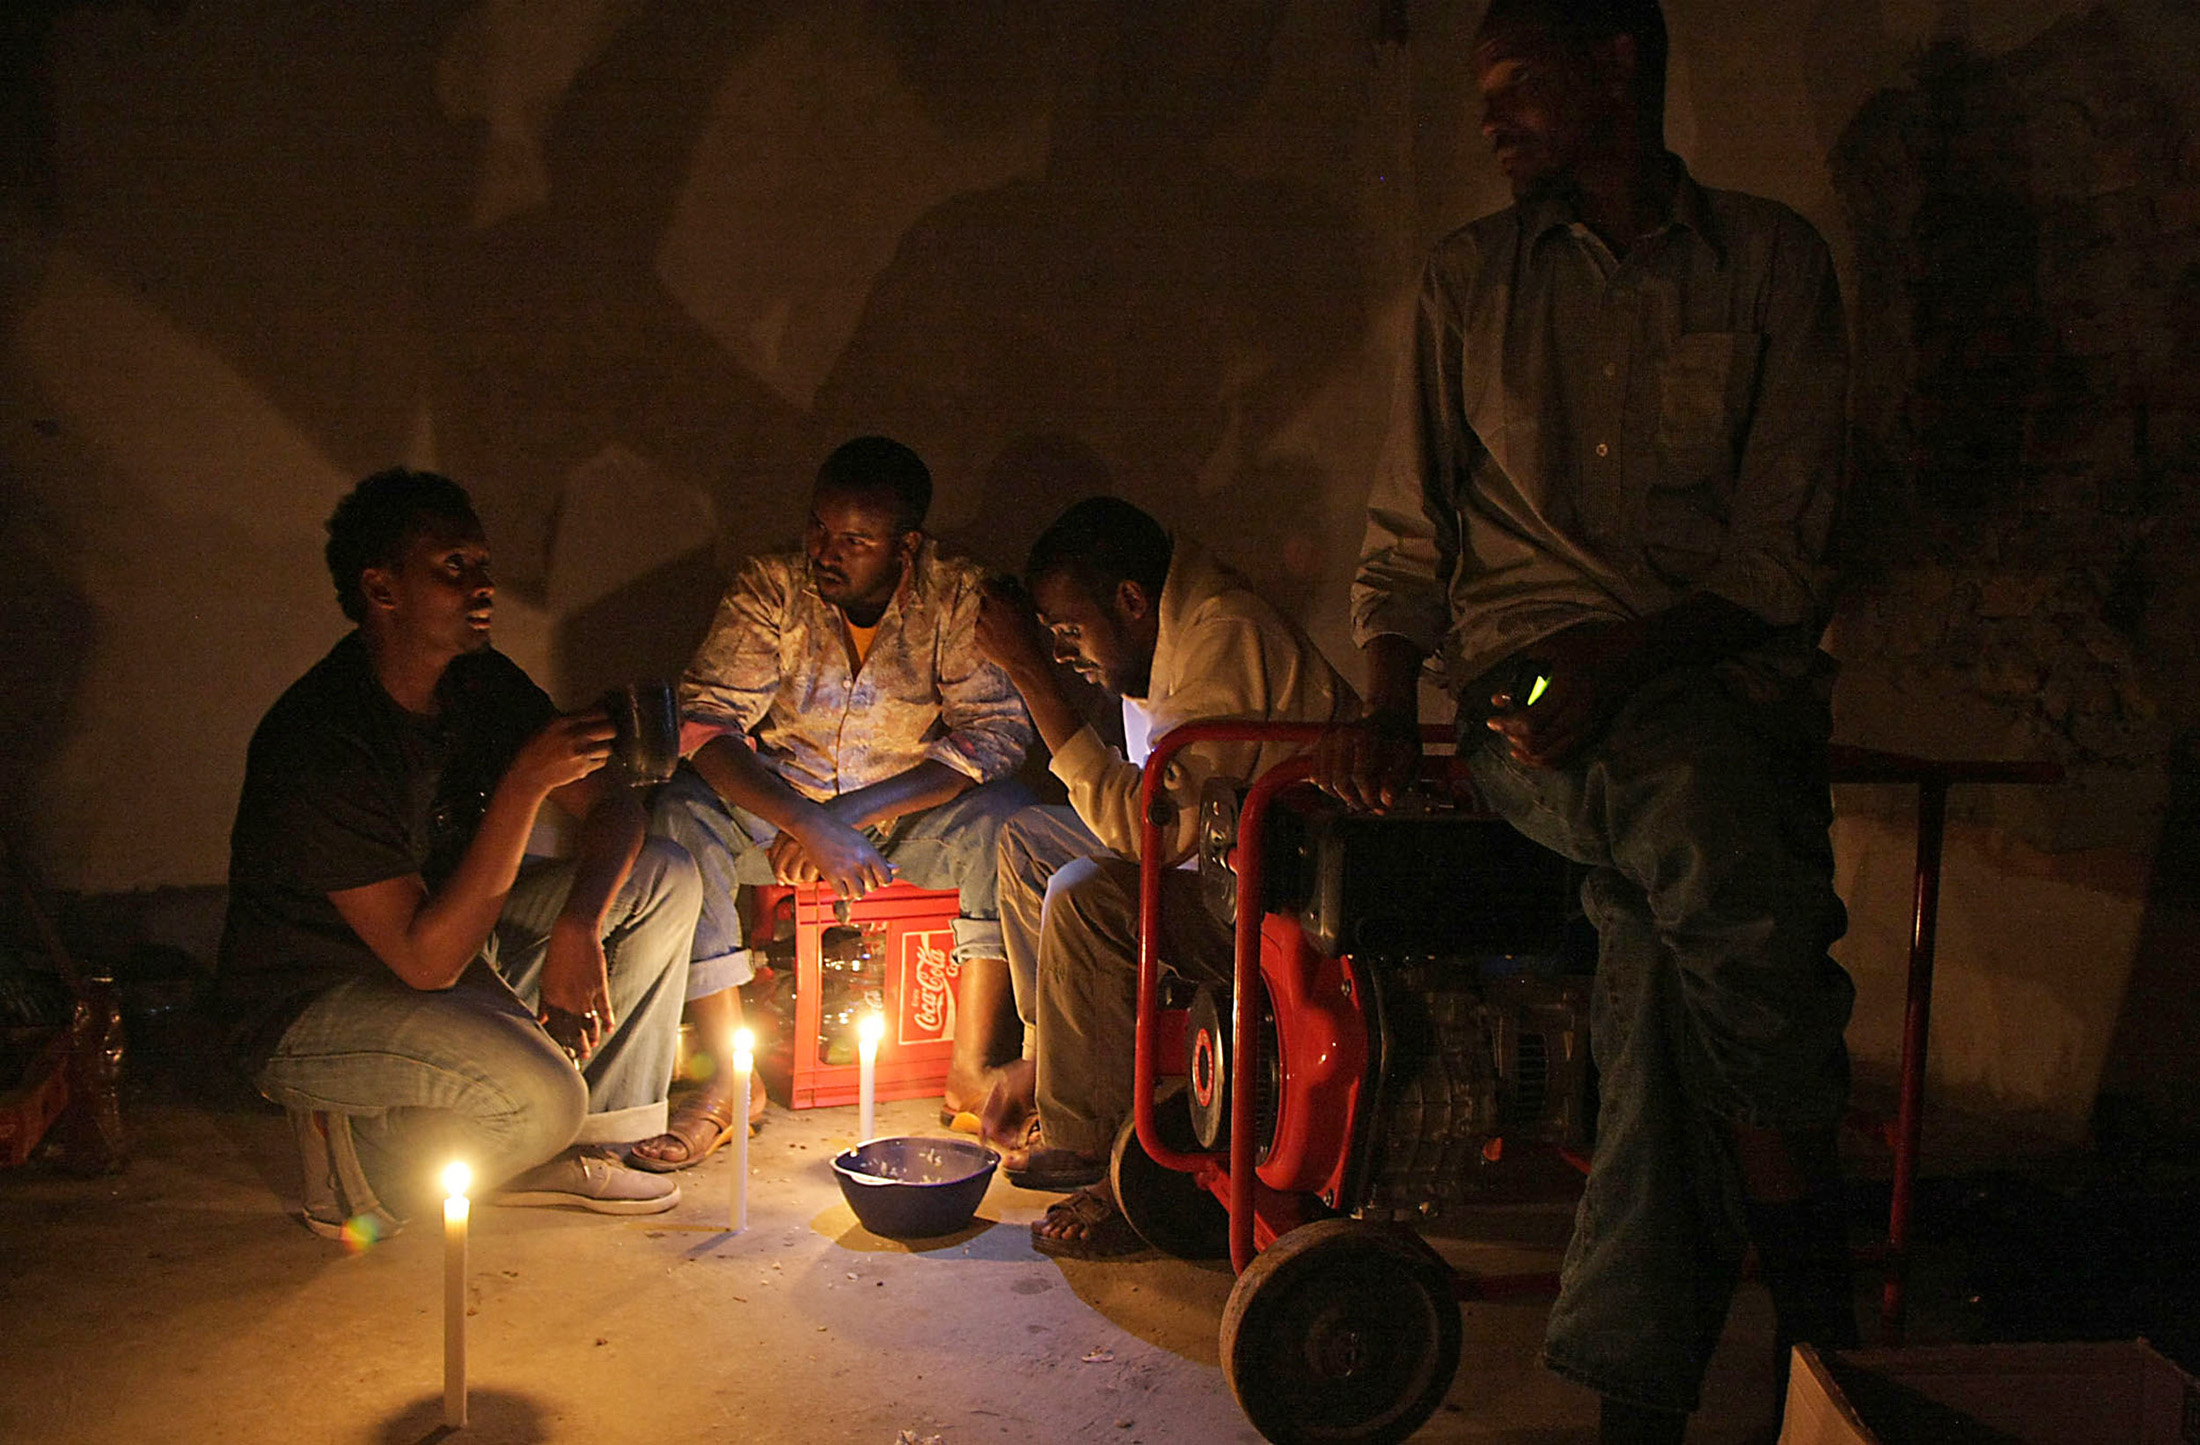 Somali shopkeeper Abdul Abdullah and his three employees share an evening meal in the small living space at the back of the shop